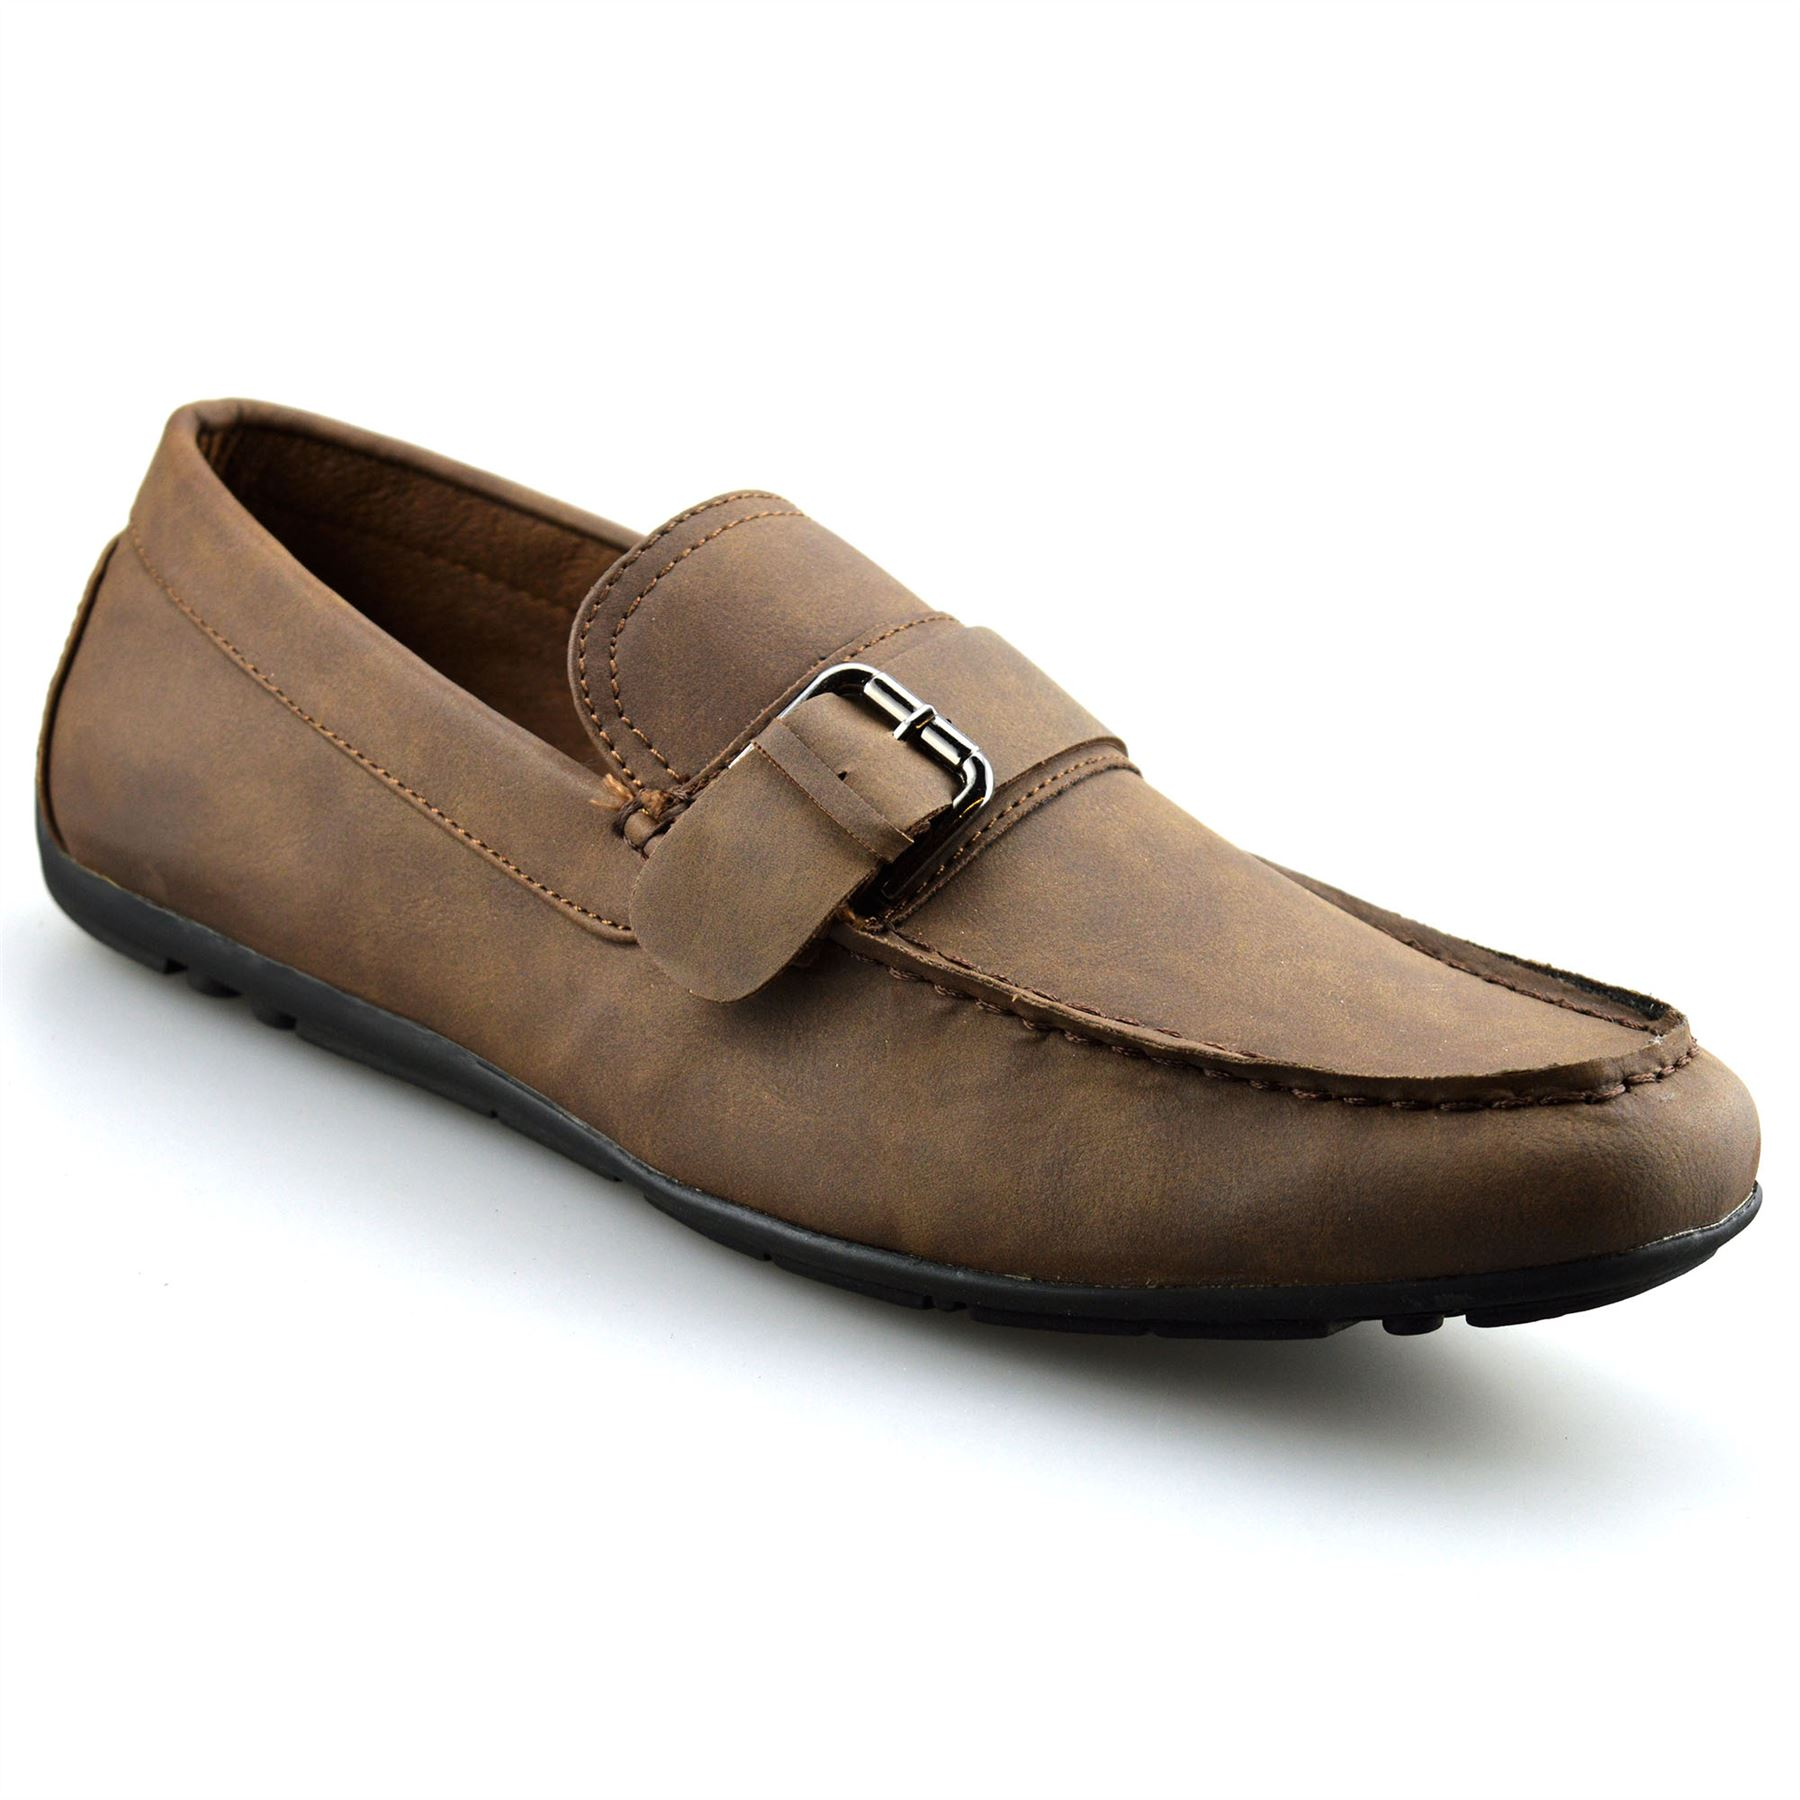 Mens-New-Slip-On-Boat-Deck-Casual-Mocassin-Designer-Loafers-Driving-Shoes-Size thumbnail 12